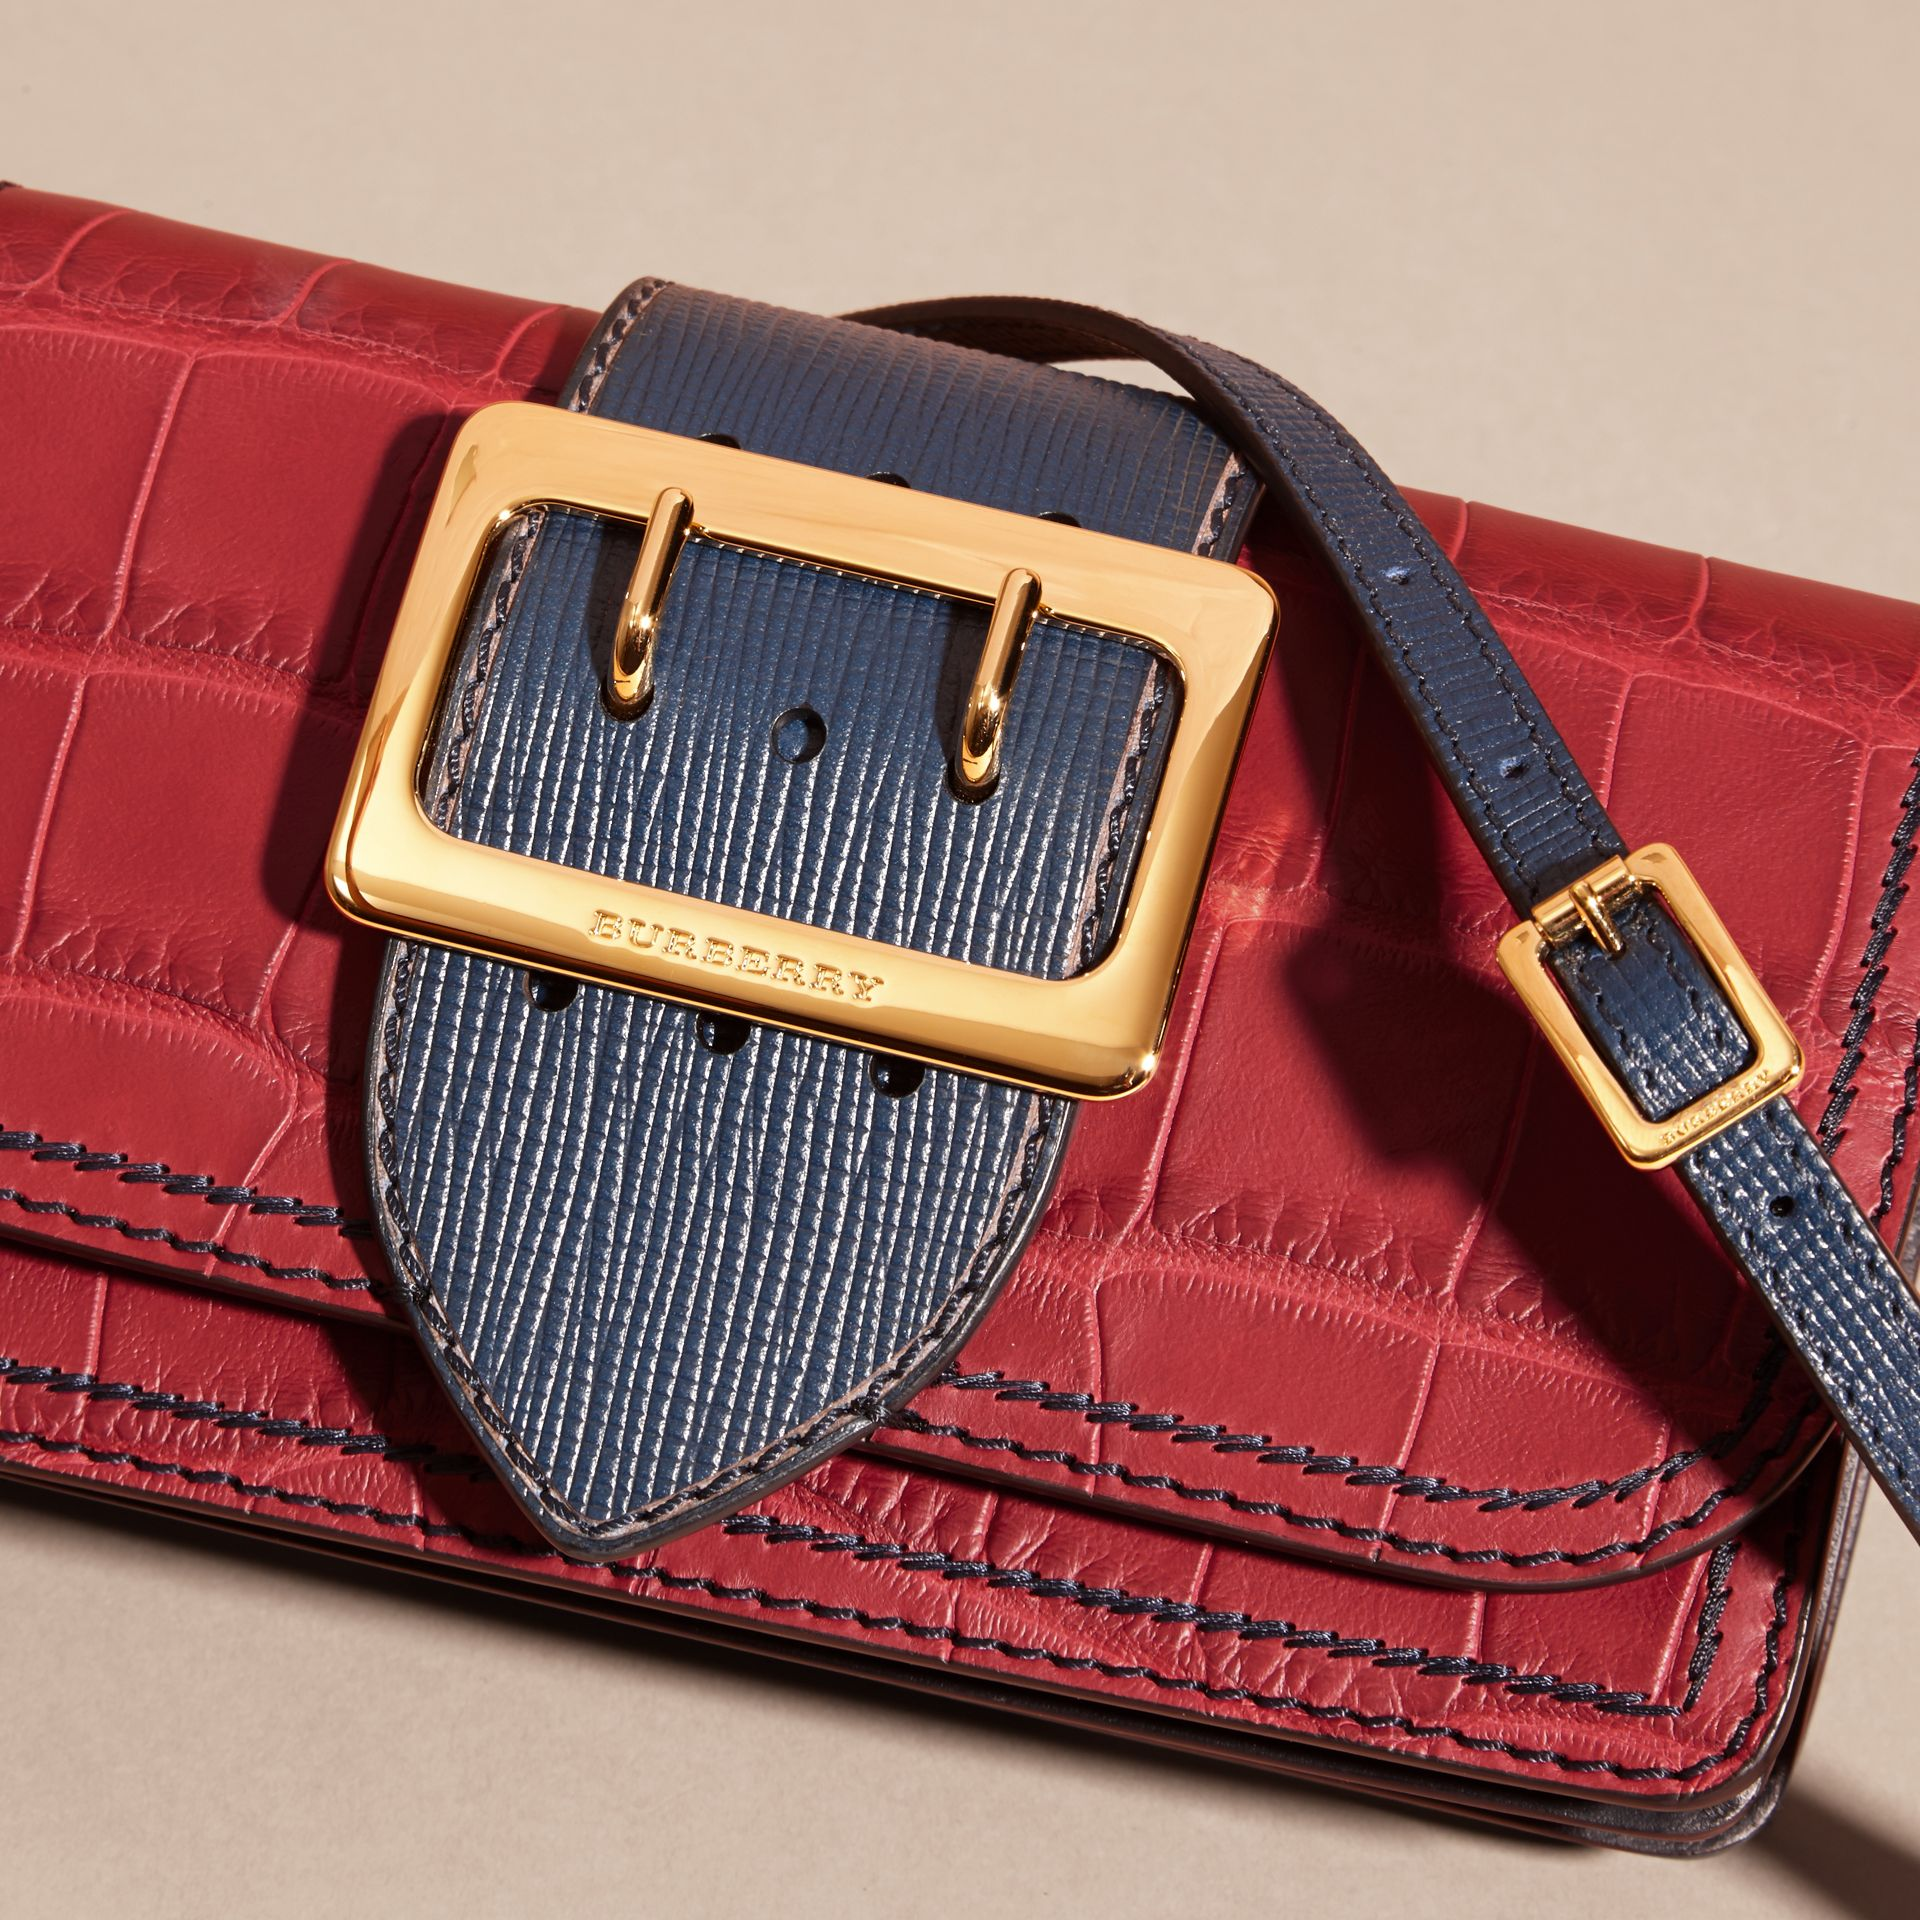 Garnet red/sapphire The Small Buckle Bag in Alligator and Leather Garnet Red/sapphire - gallery image 2